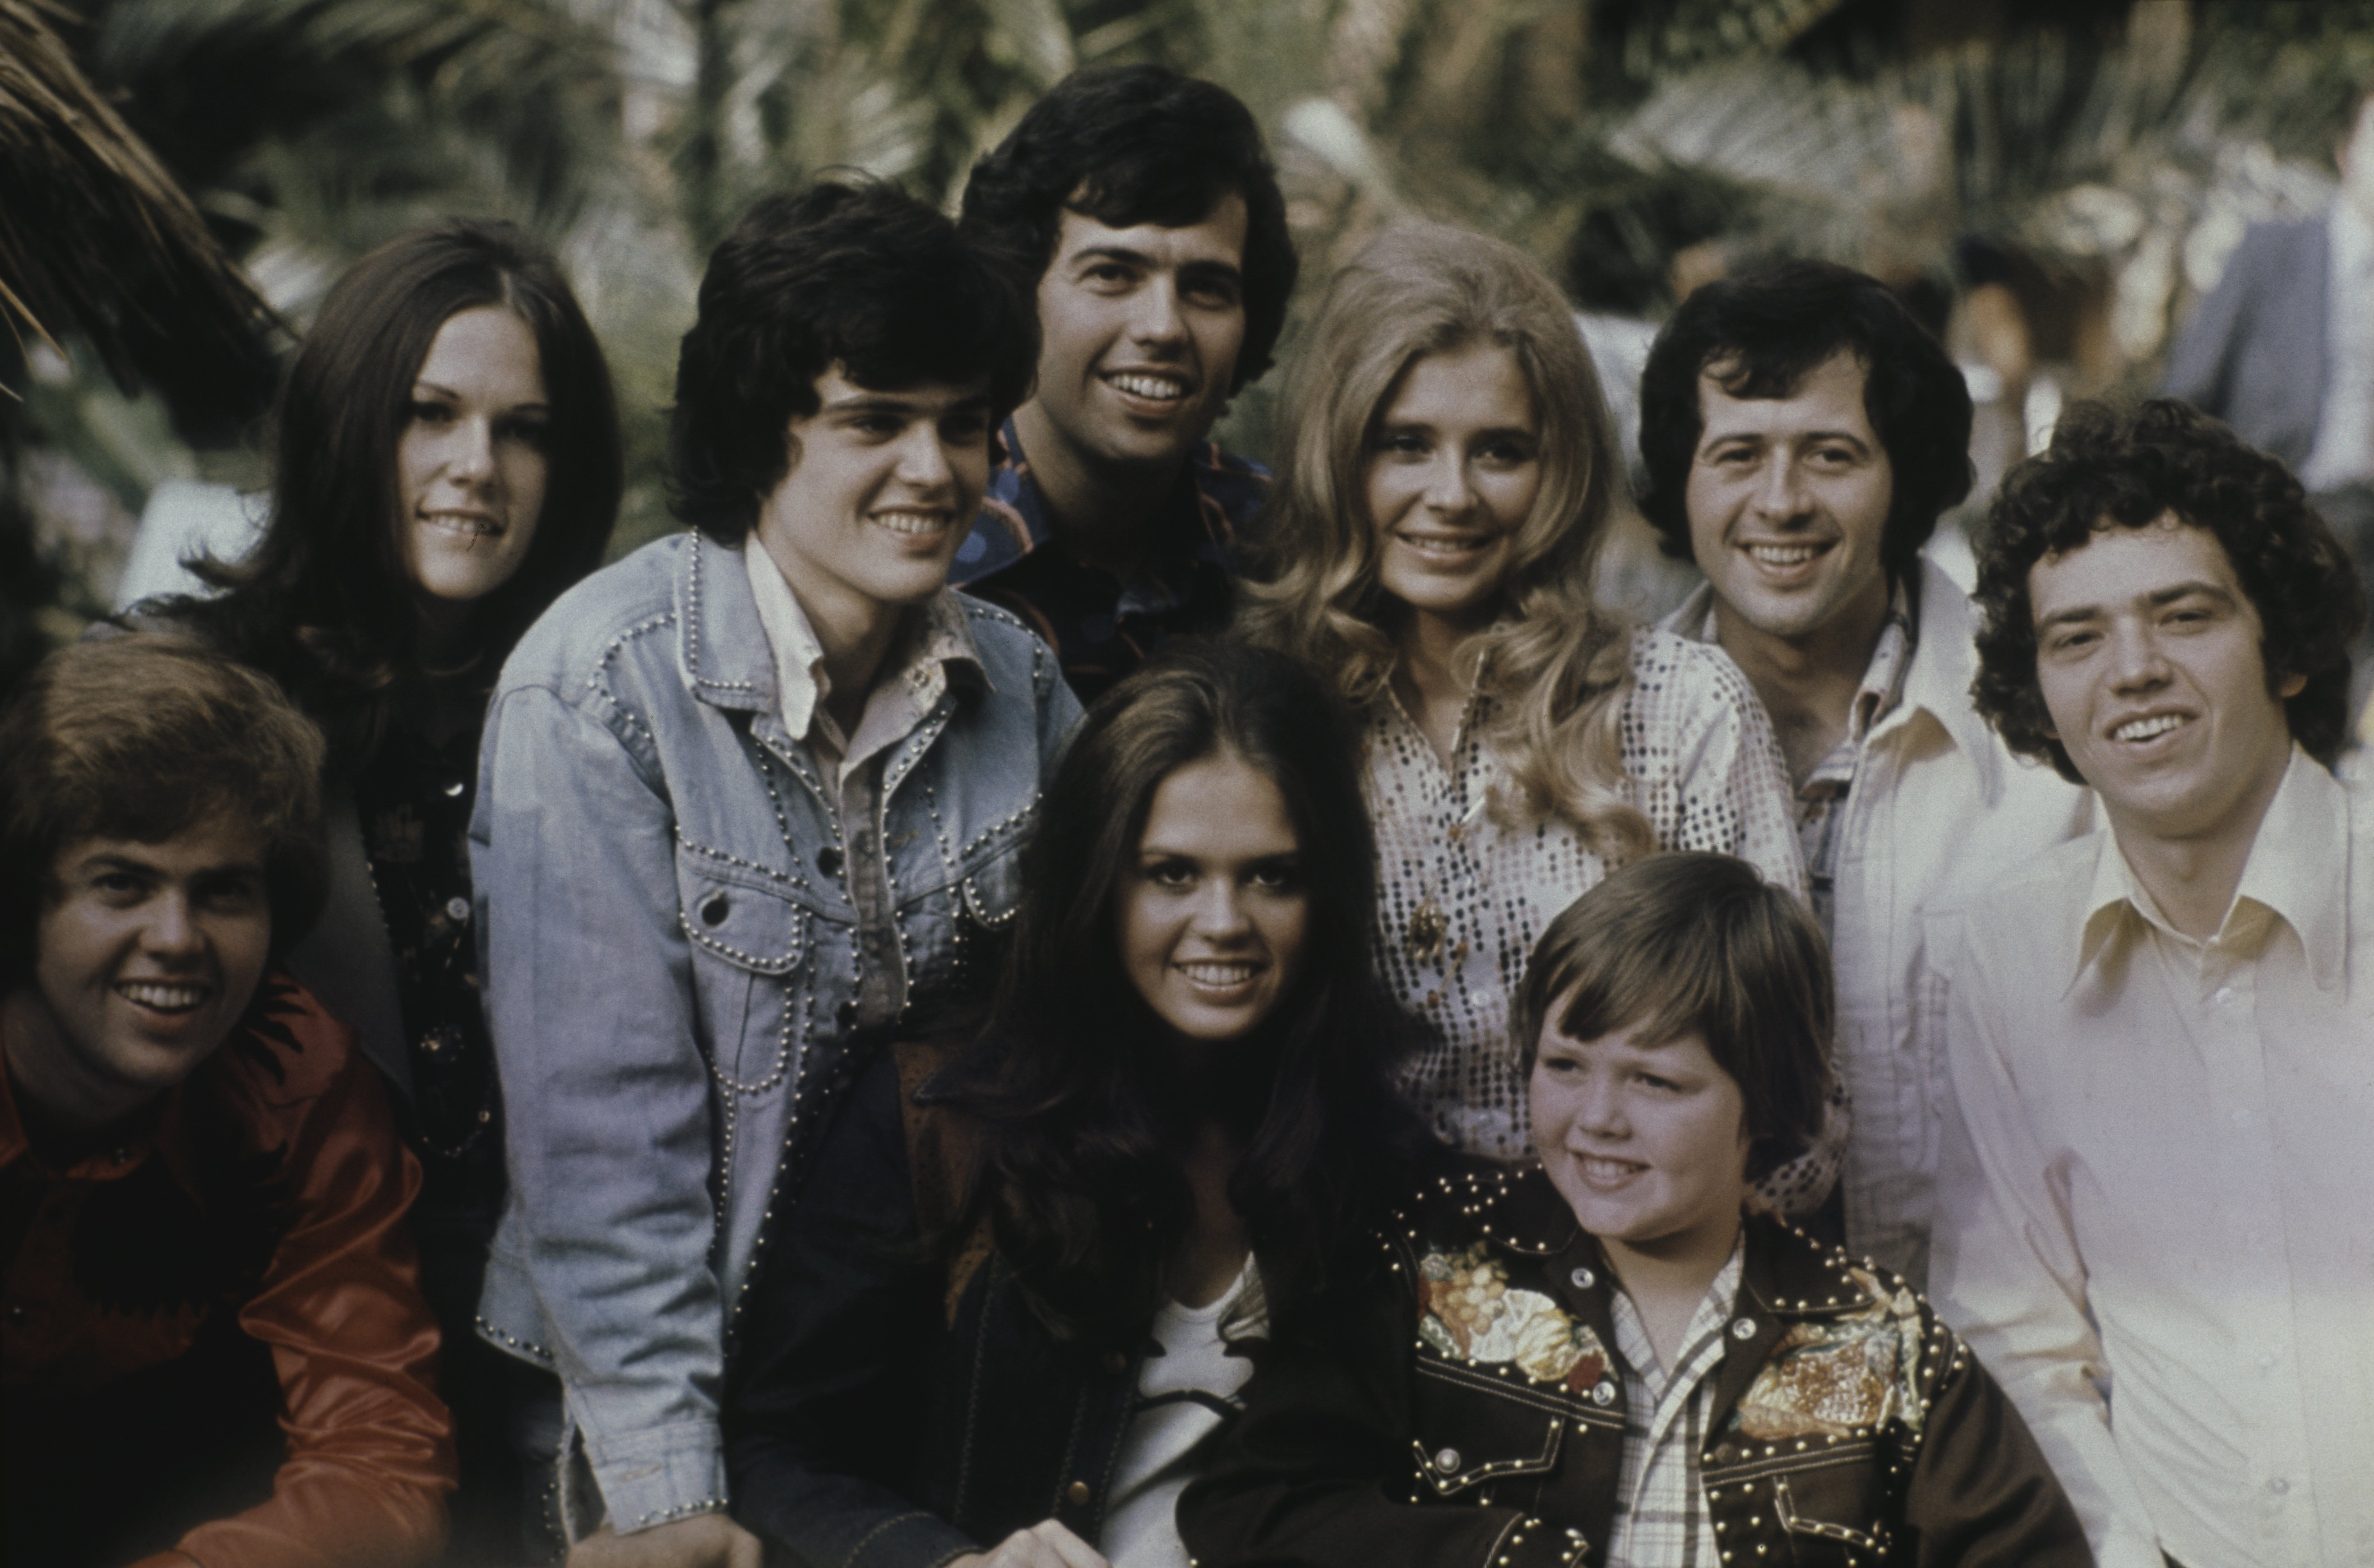 Image Credits: Getty Images / Michael Putland | Group portrait of American family vocal group The Osmonds posed with friends in 1973. Group members are, from left to right, Merrill Osmond, unknown woman, Donny Osmond, Alan Osmond, Marie Osmond, unknown woman, Jimmy Osmond (bottom) Wayne Osmond and unknown man.